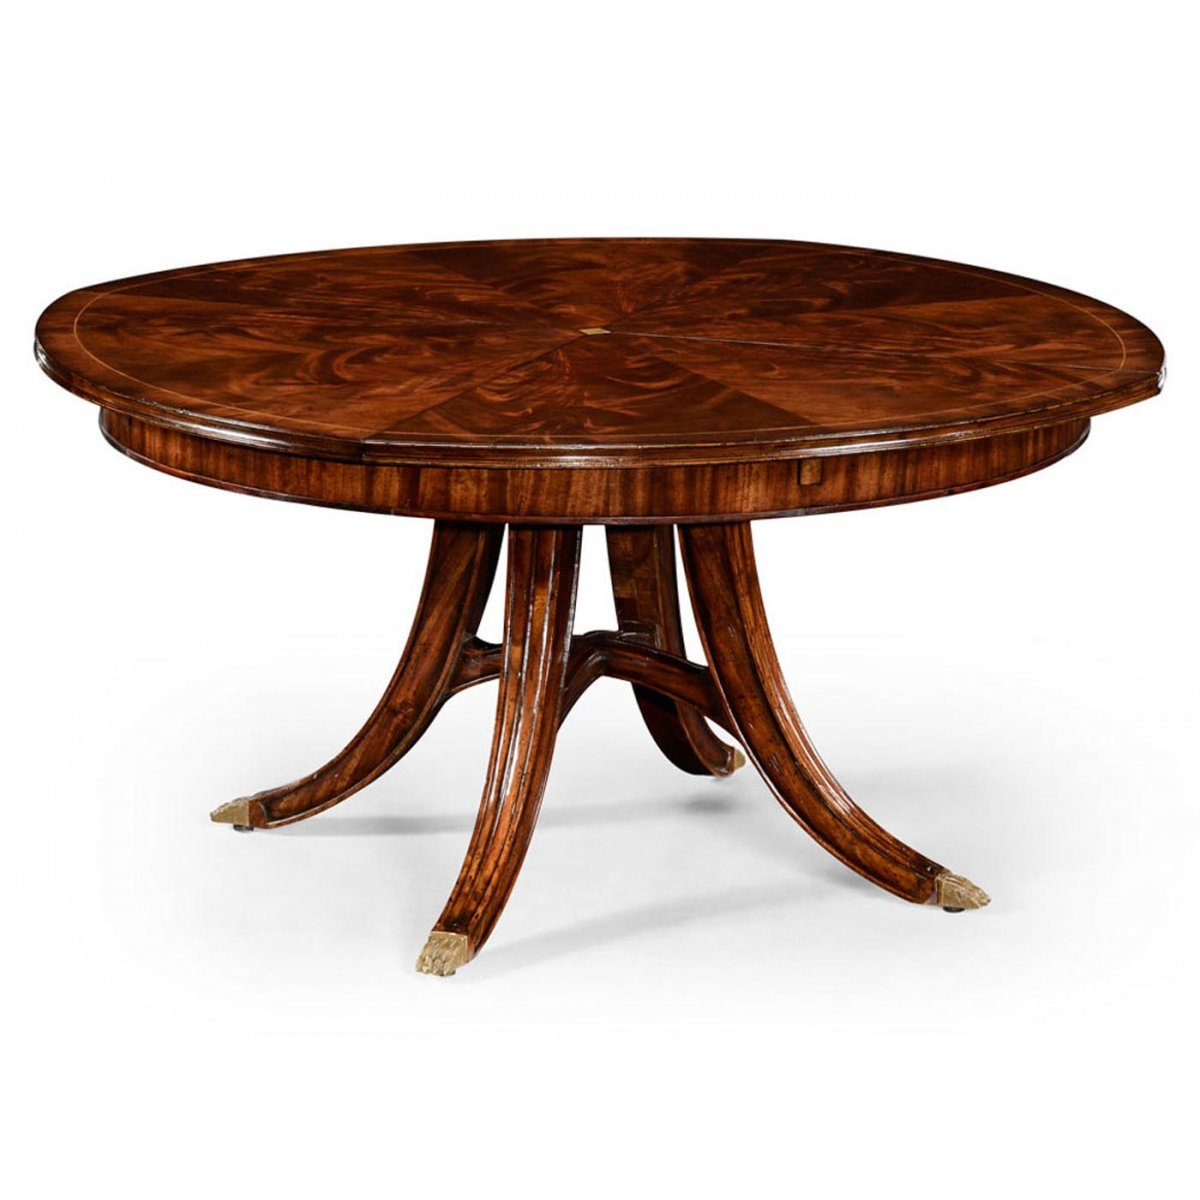 8 seater round dining table and chairs indoor chaise 10 extending swanky interiors